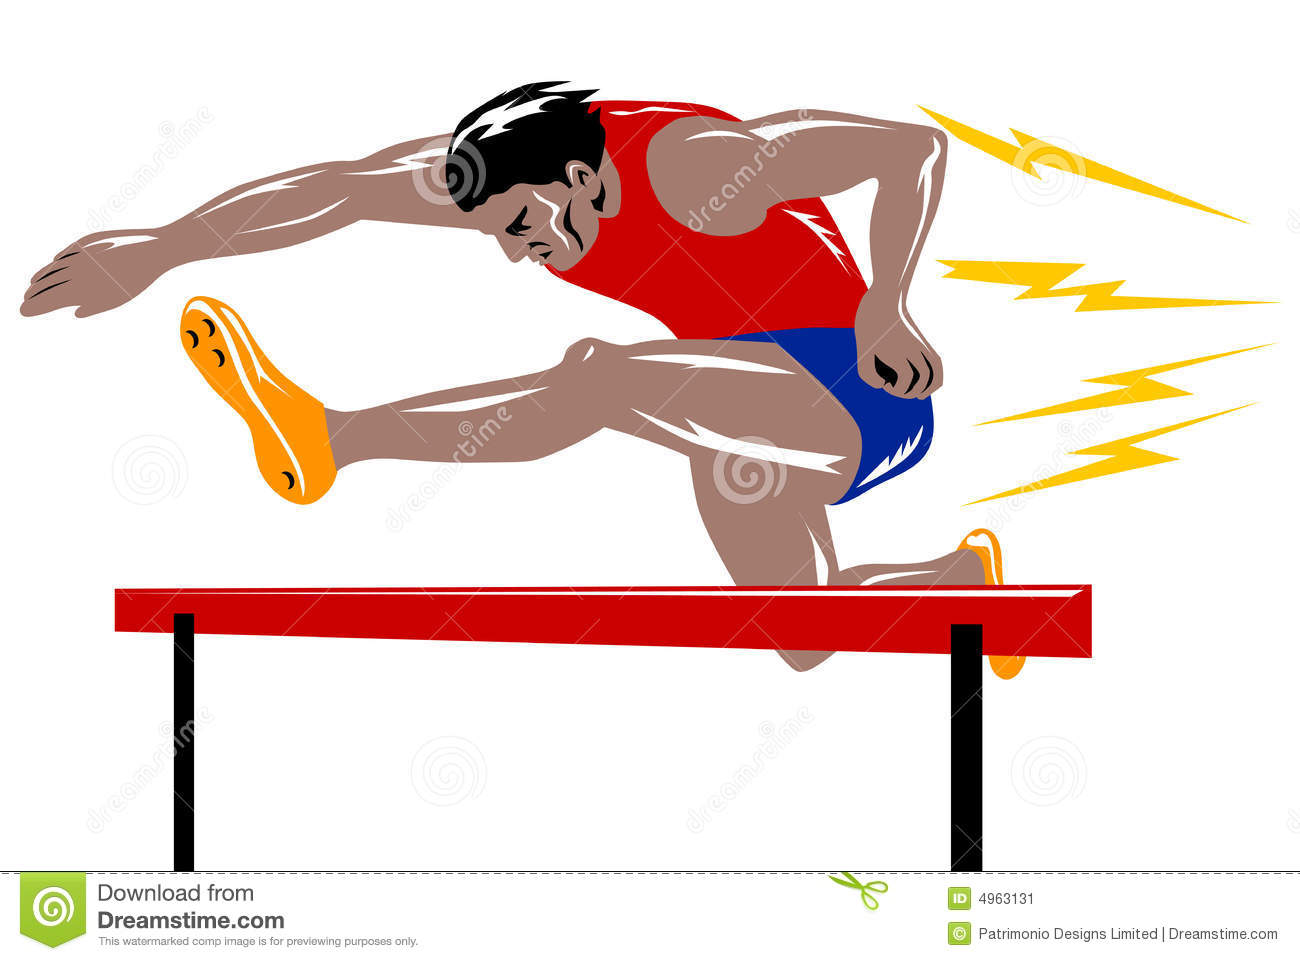 Athlete jumping the hurdle stock vector. Illustration of ...